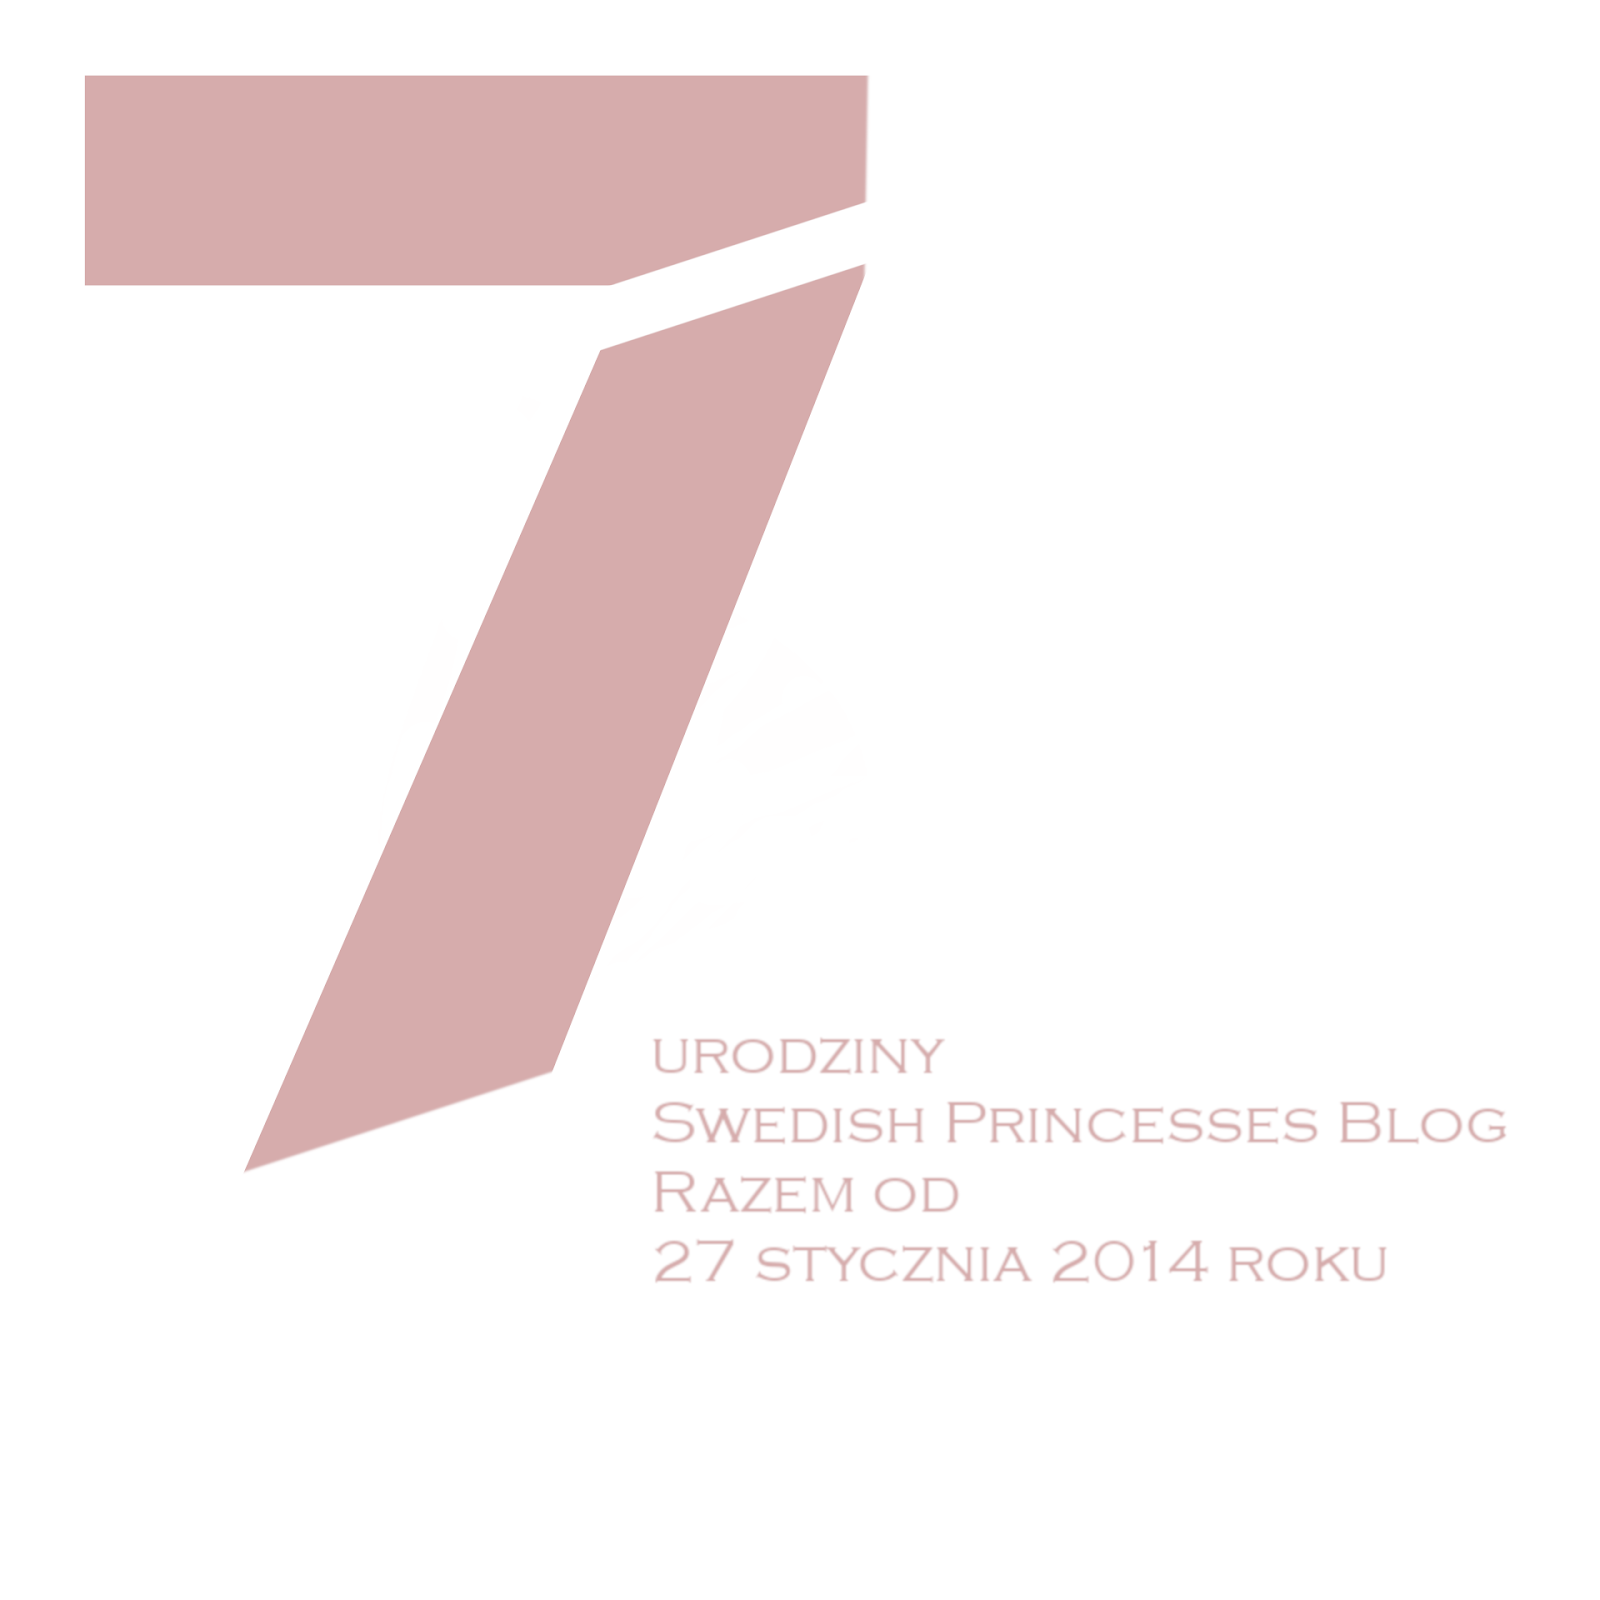 7 urodziny Swedish Princesses Blog